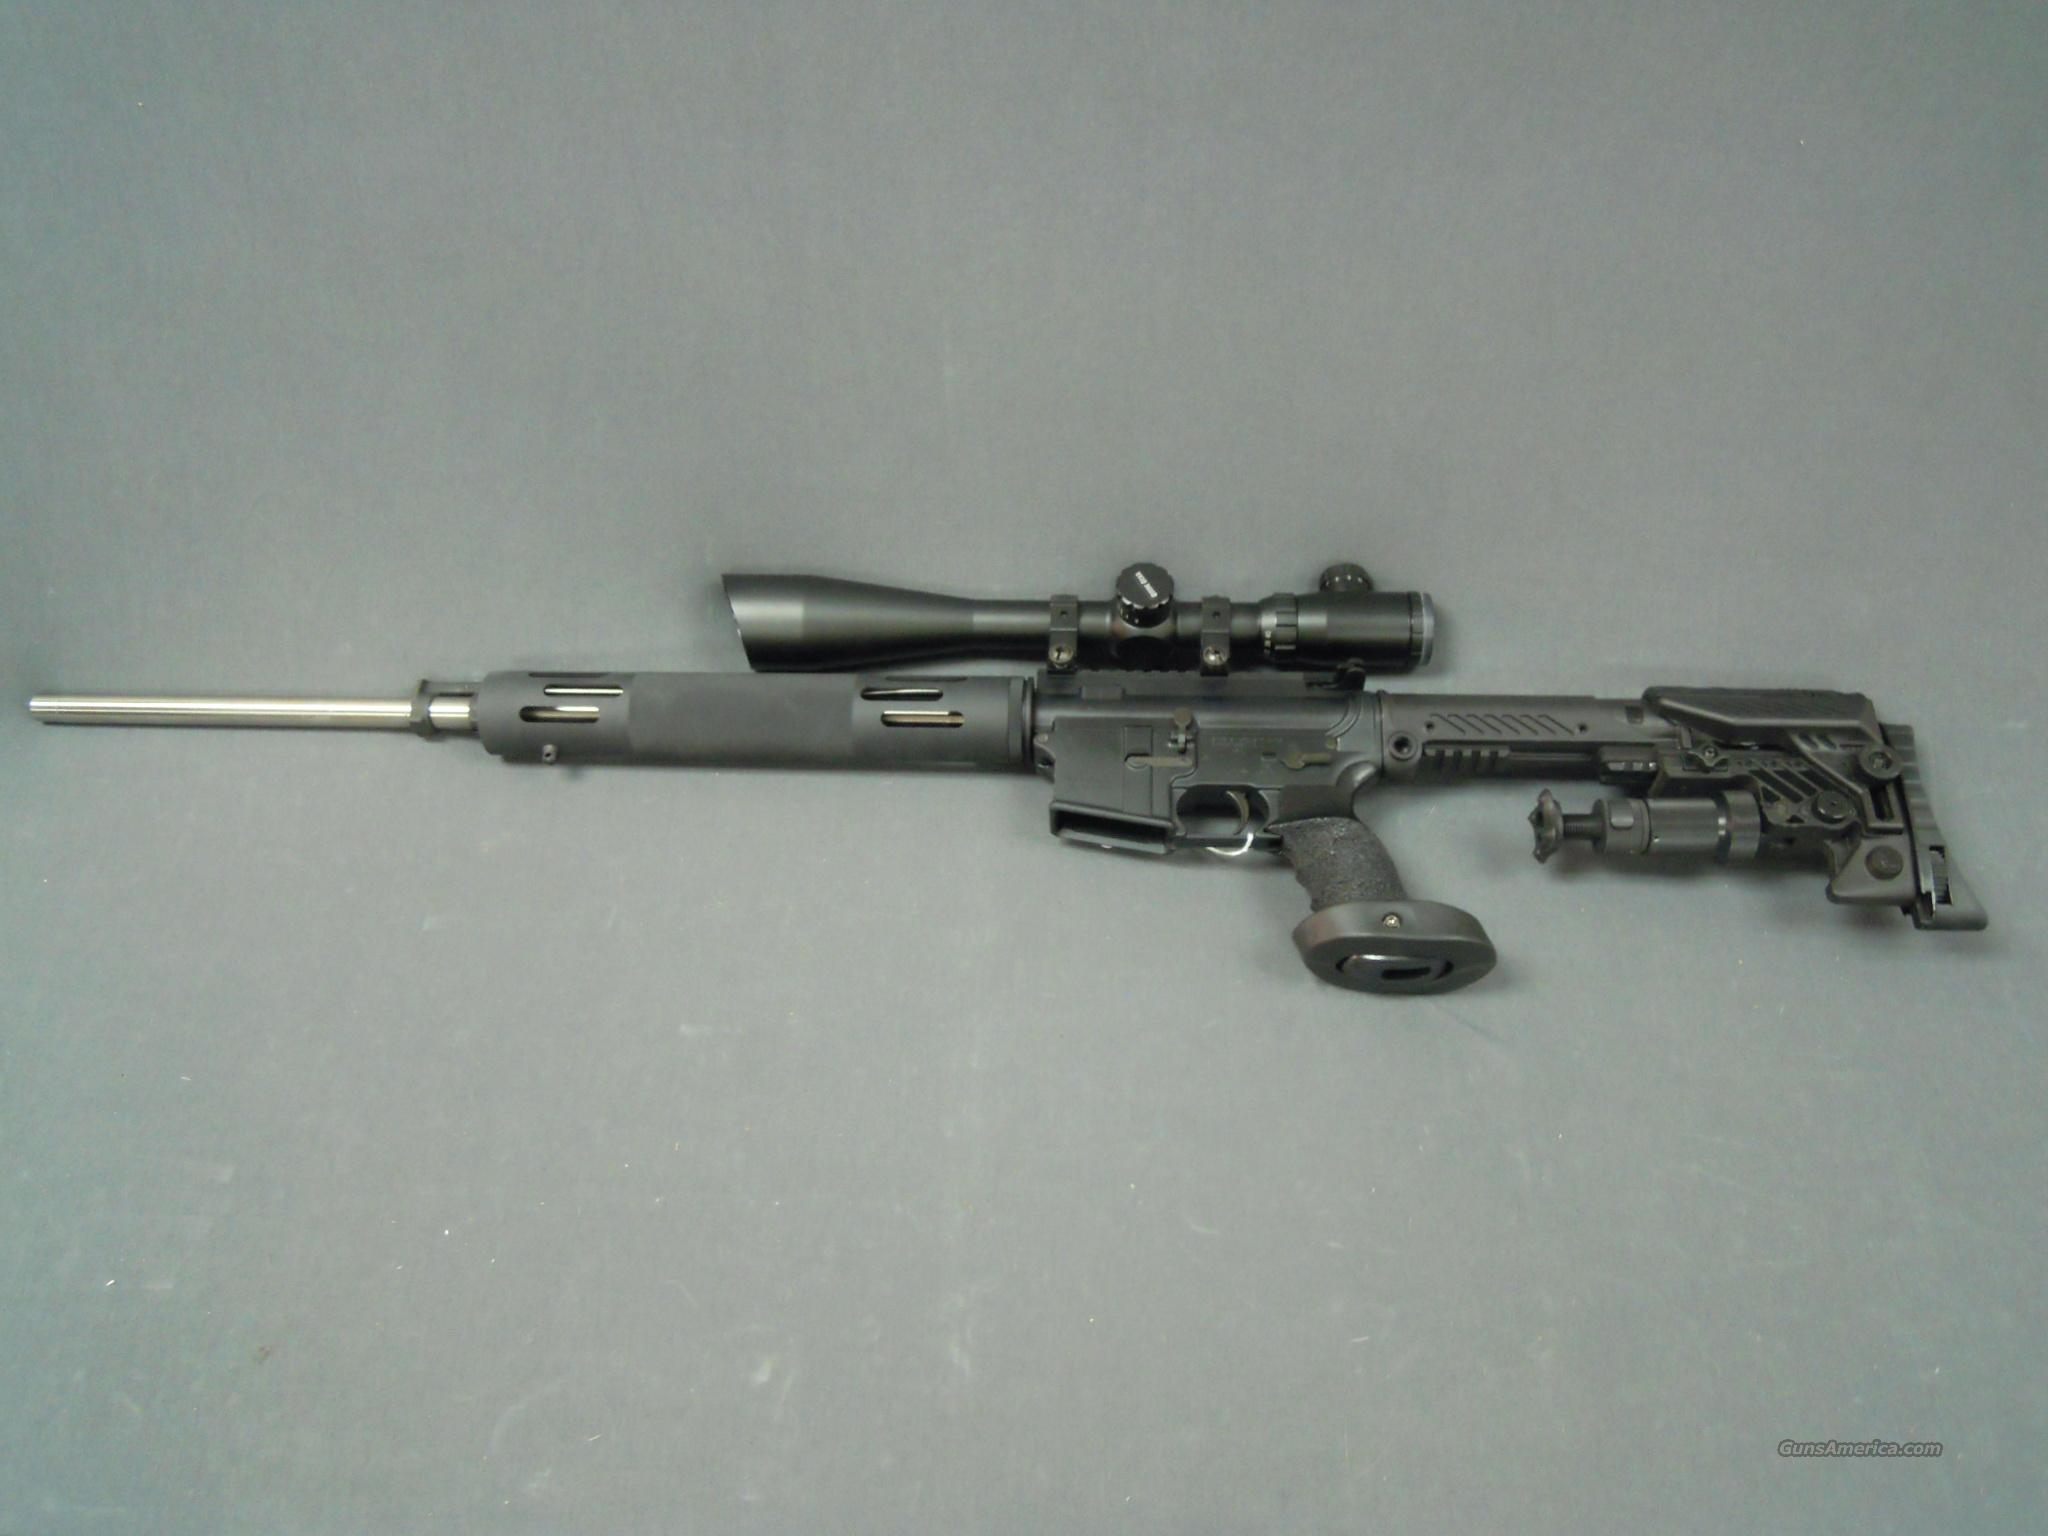 Sportswereus-R AR-15  Guns > Rifles > AR-15 Rifles - Small Manufacturers > Complete Rifle